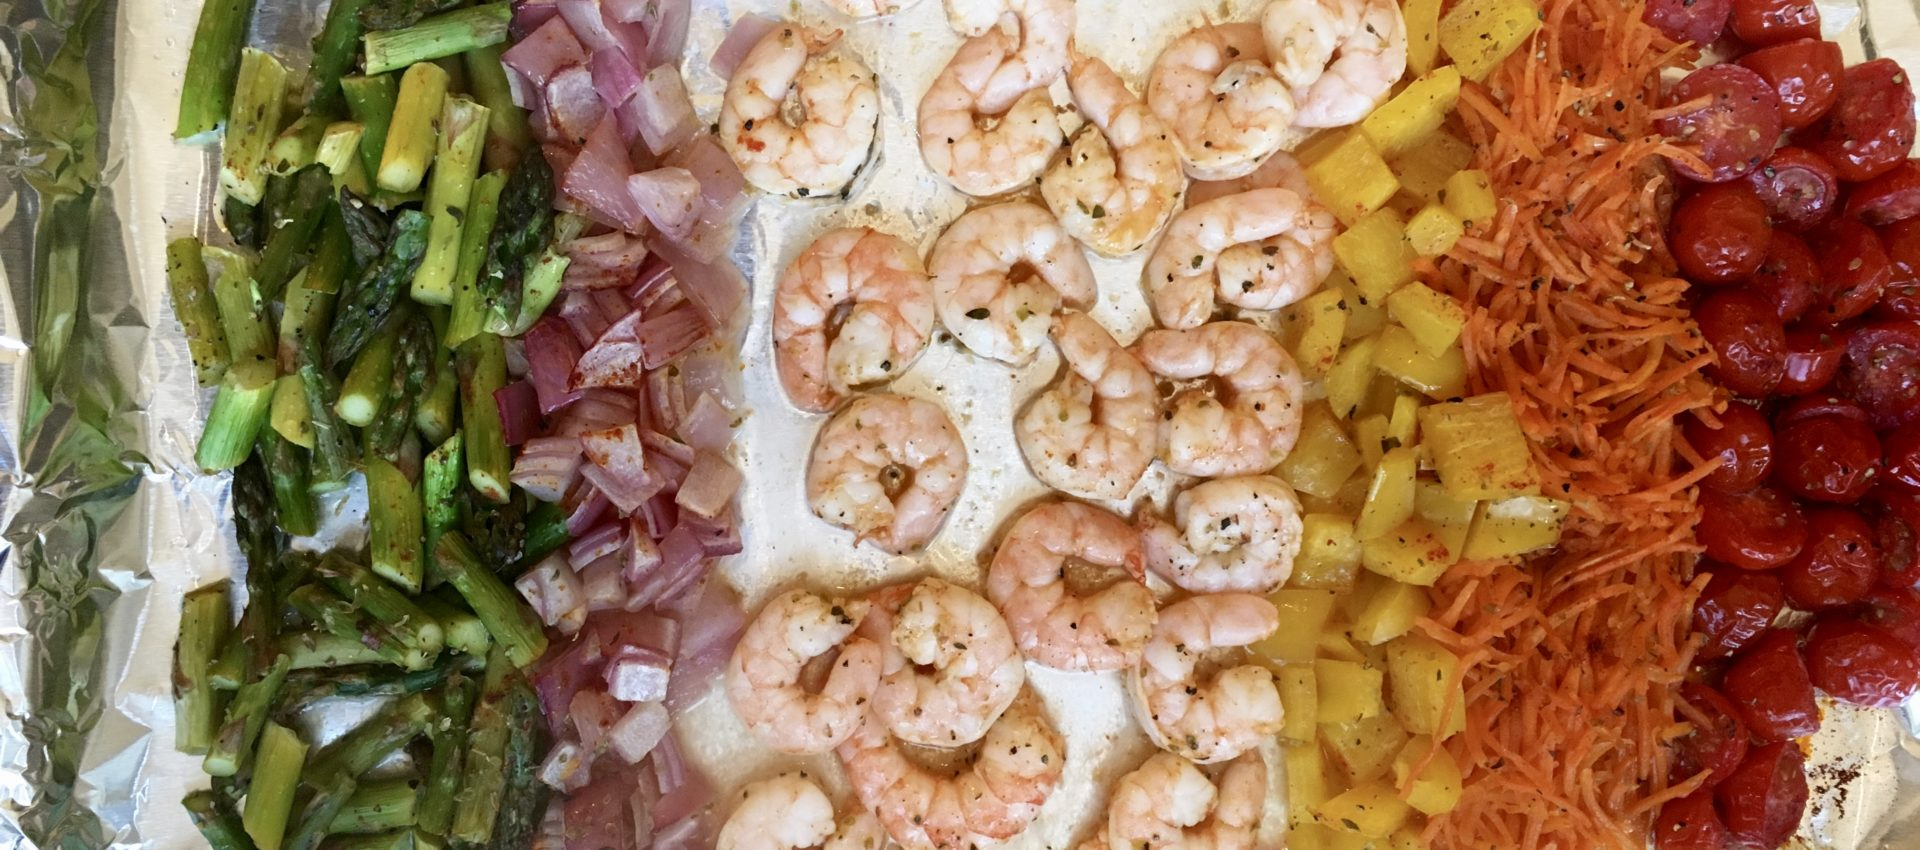 Roasted Shrimp And Vegetable Salad With Chili Lime